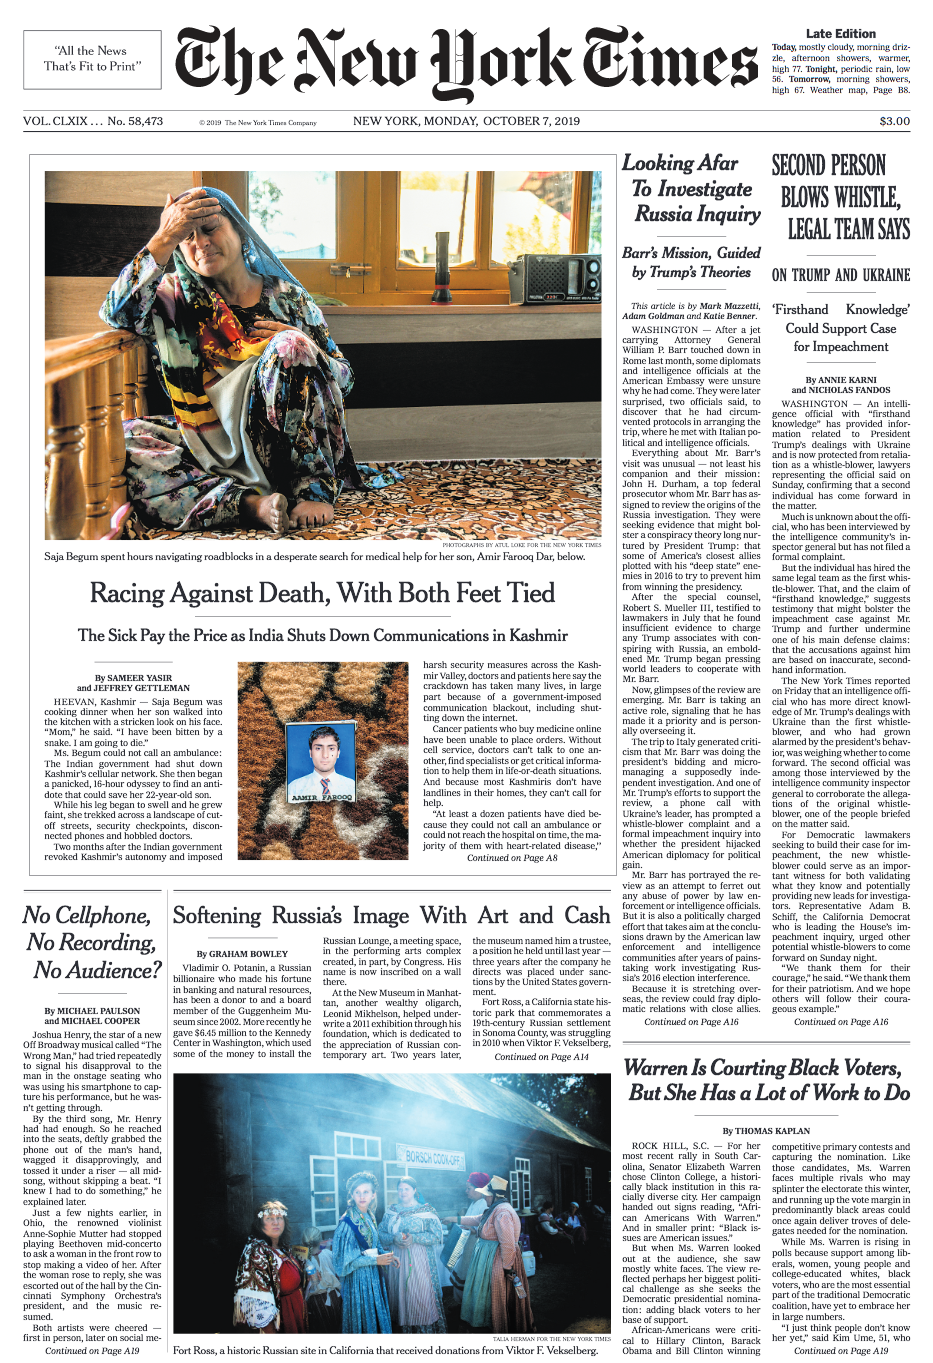 NYT_FrontPage_100719.png